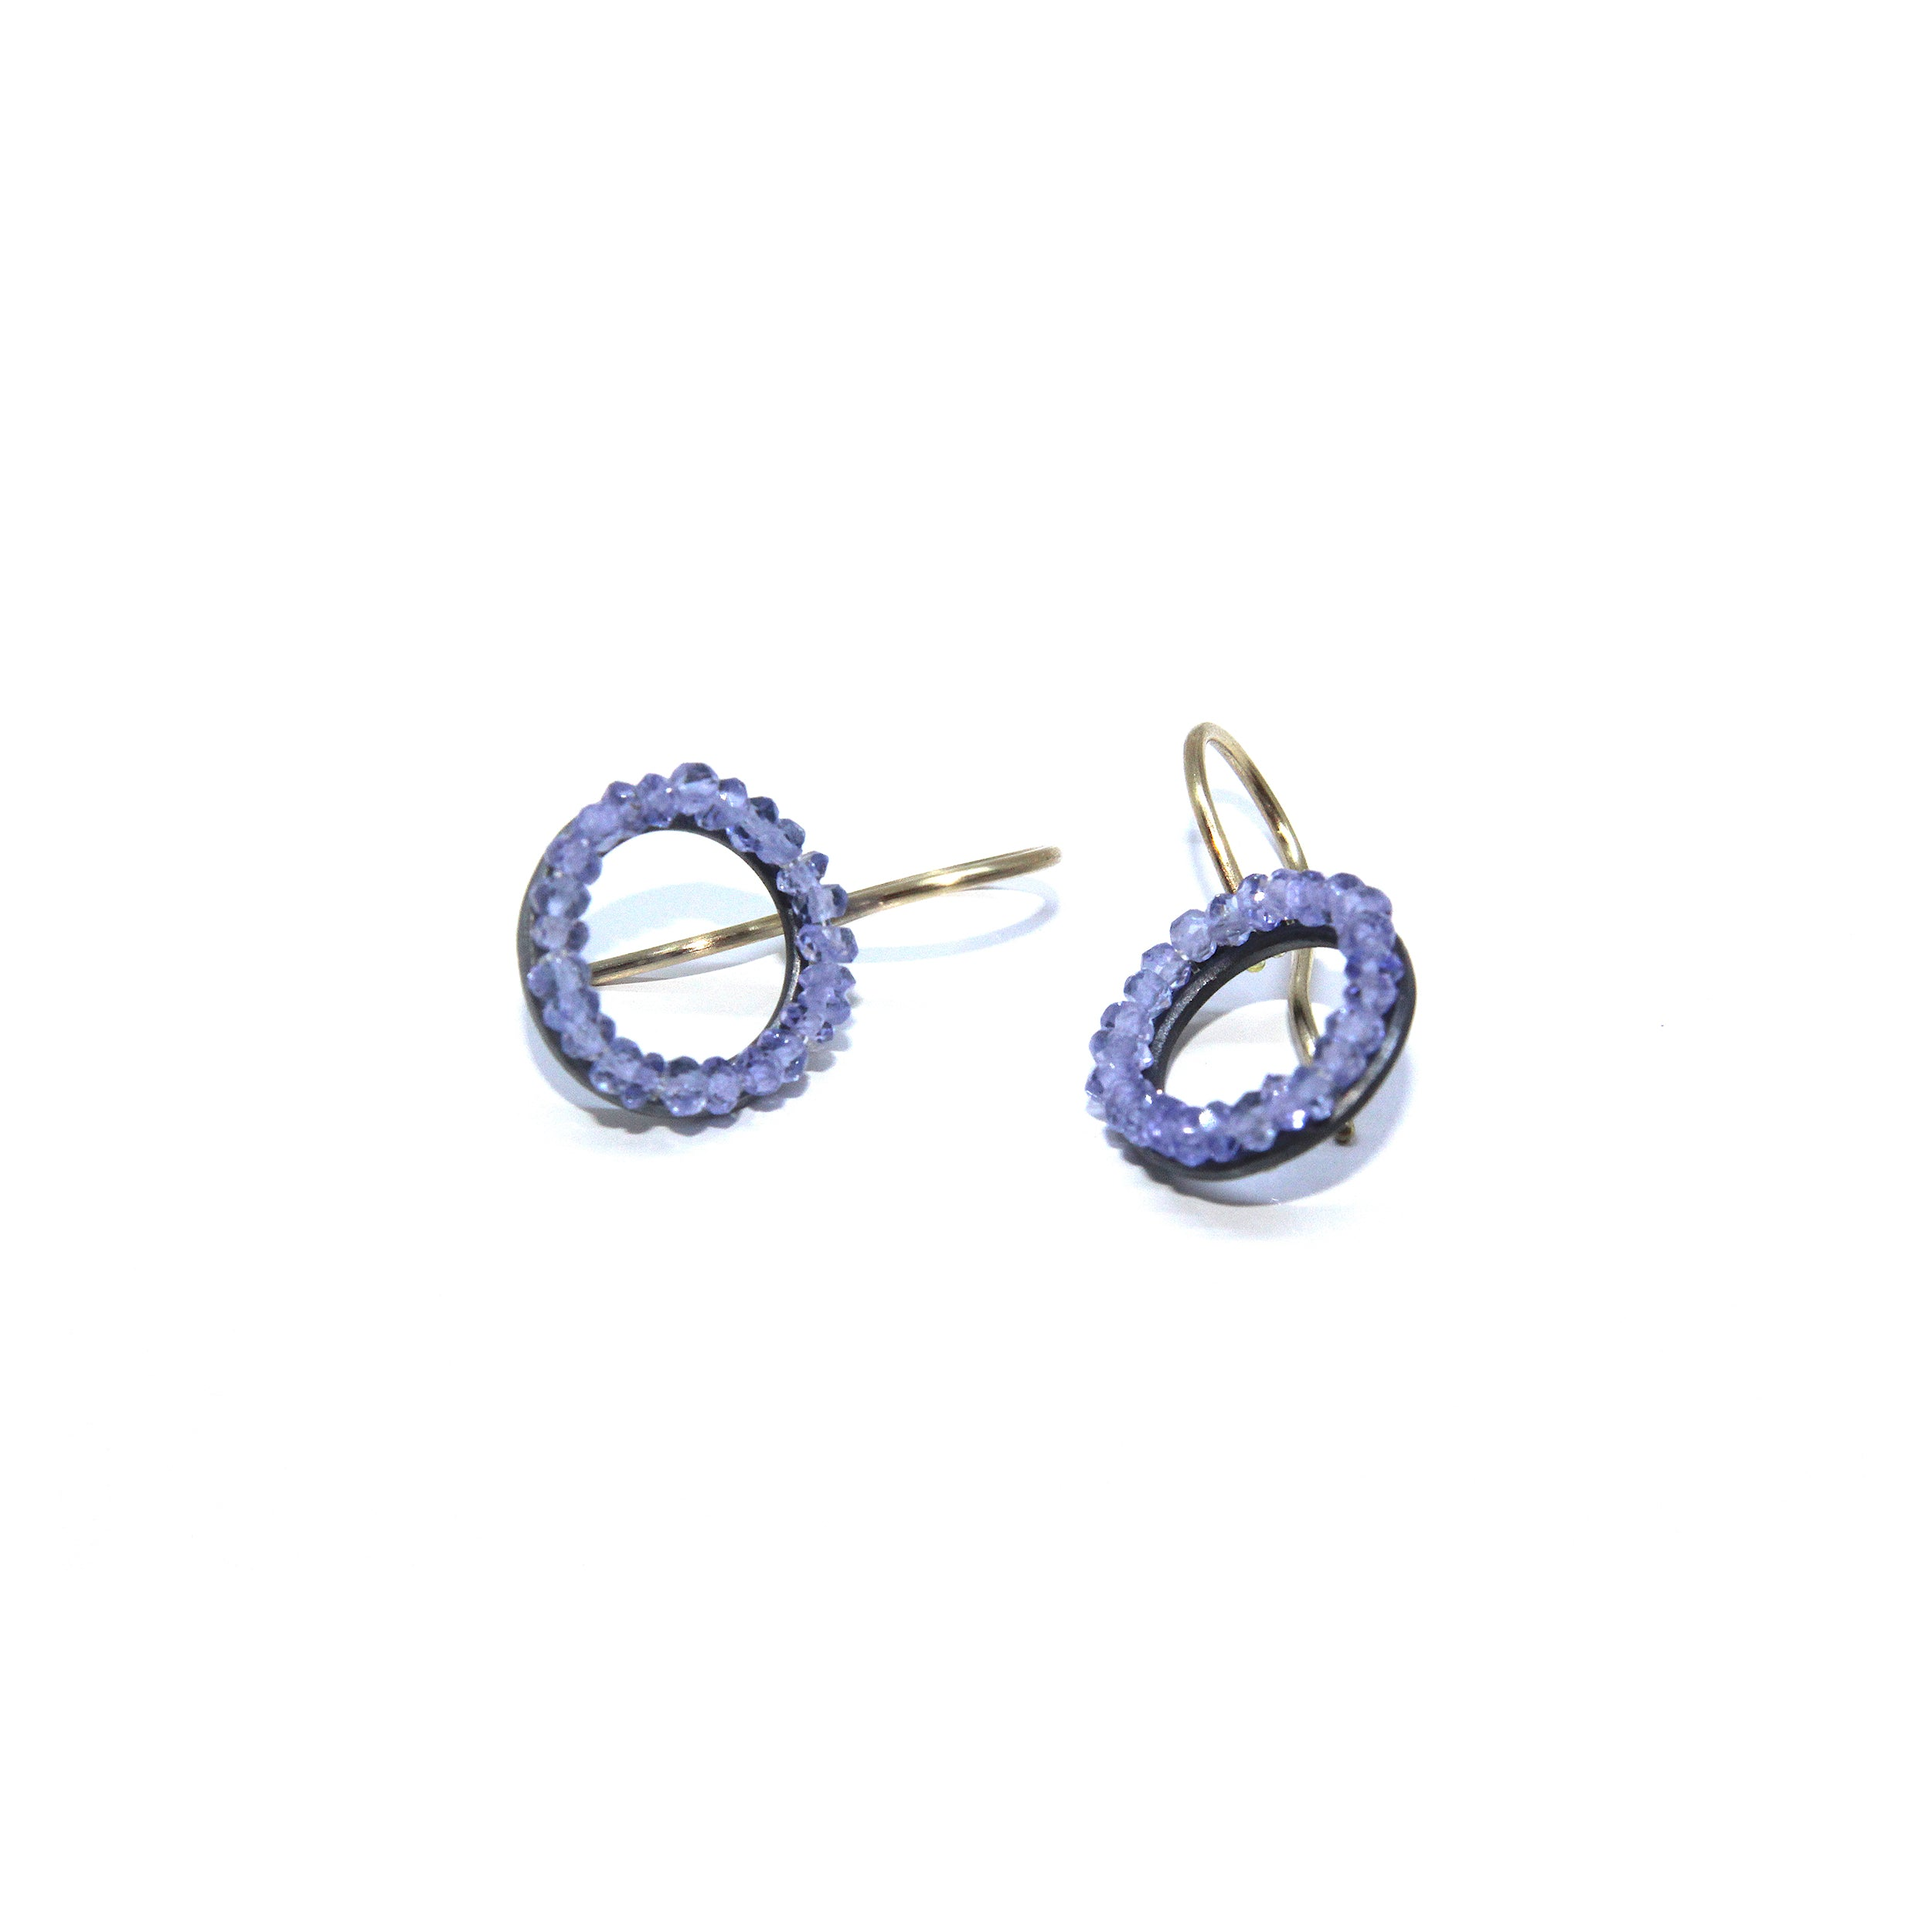 earrings obsidian jewellery claw product studs gold tanzanite set studio prev earring